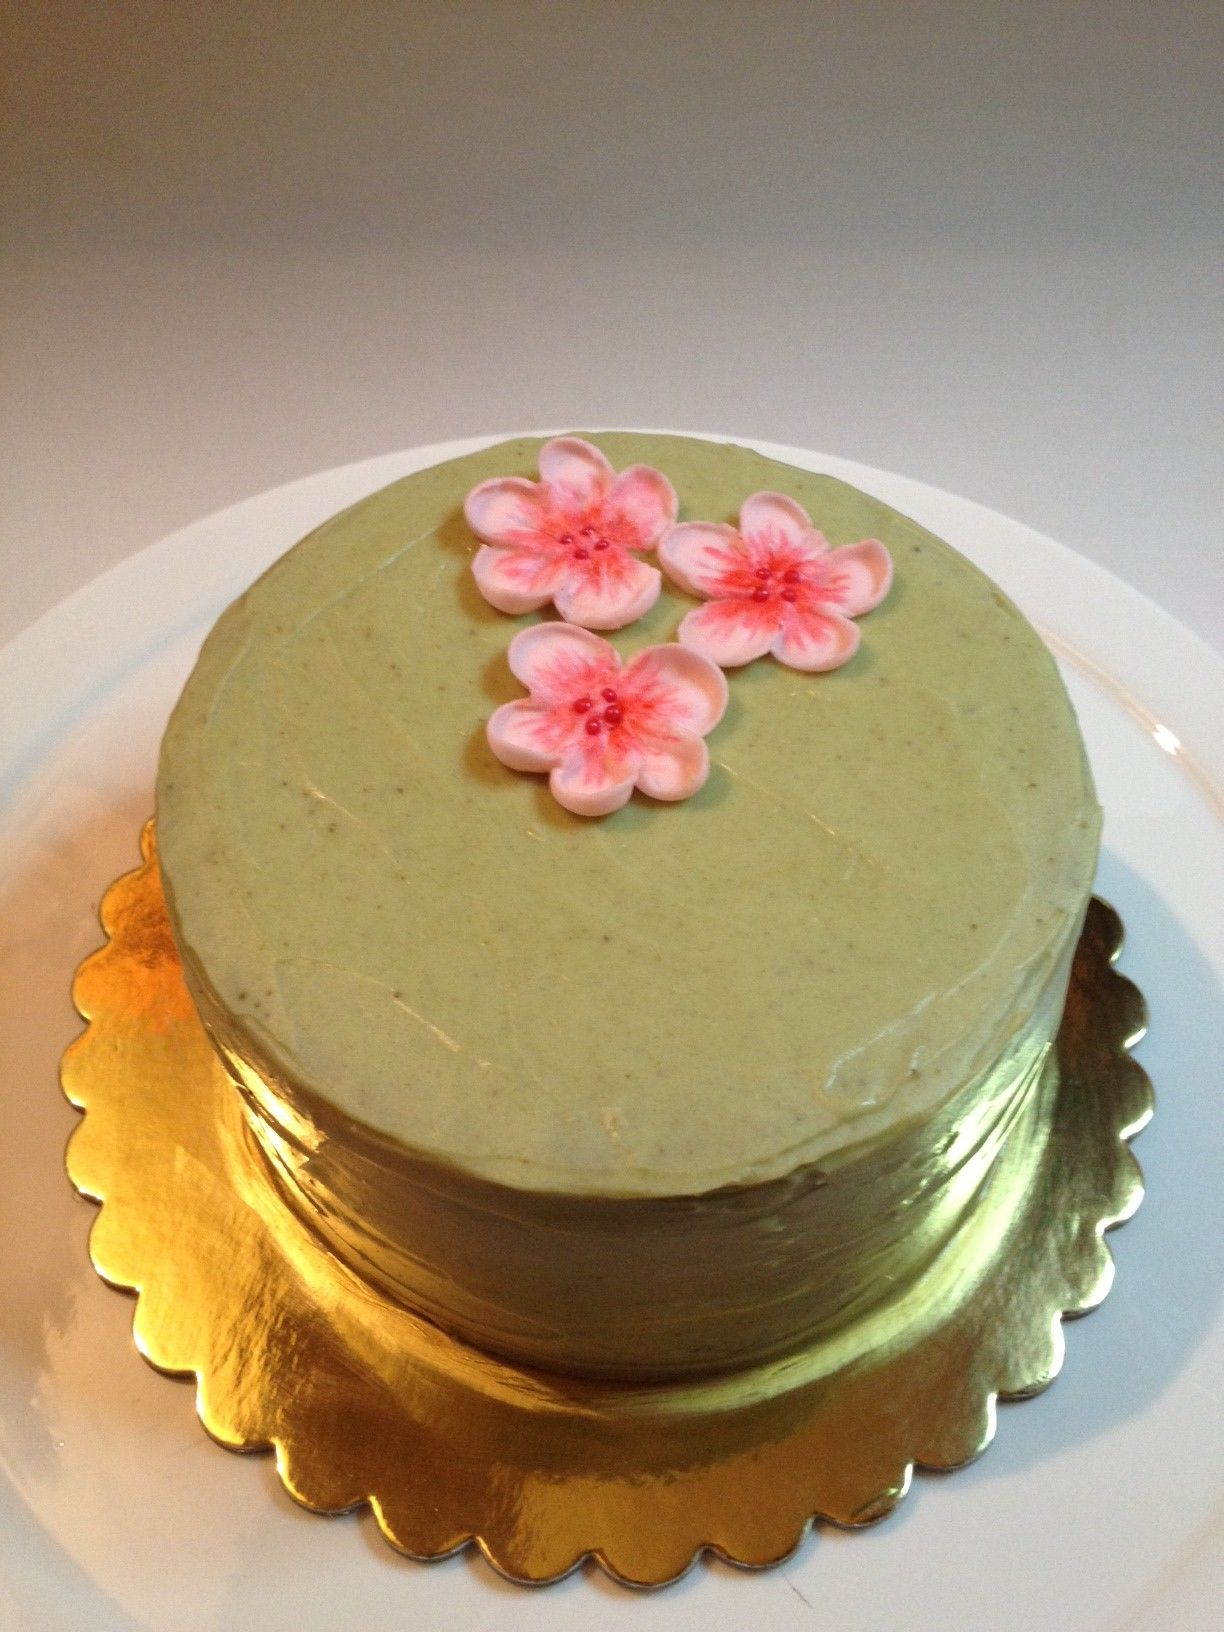 Matcha green tea cake with white chocolate green tea frosting.